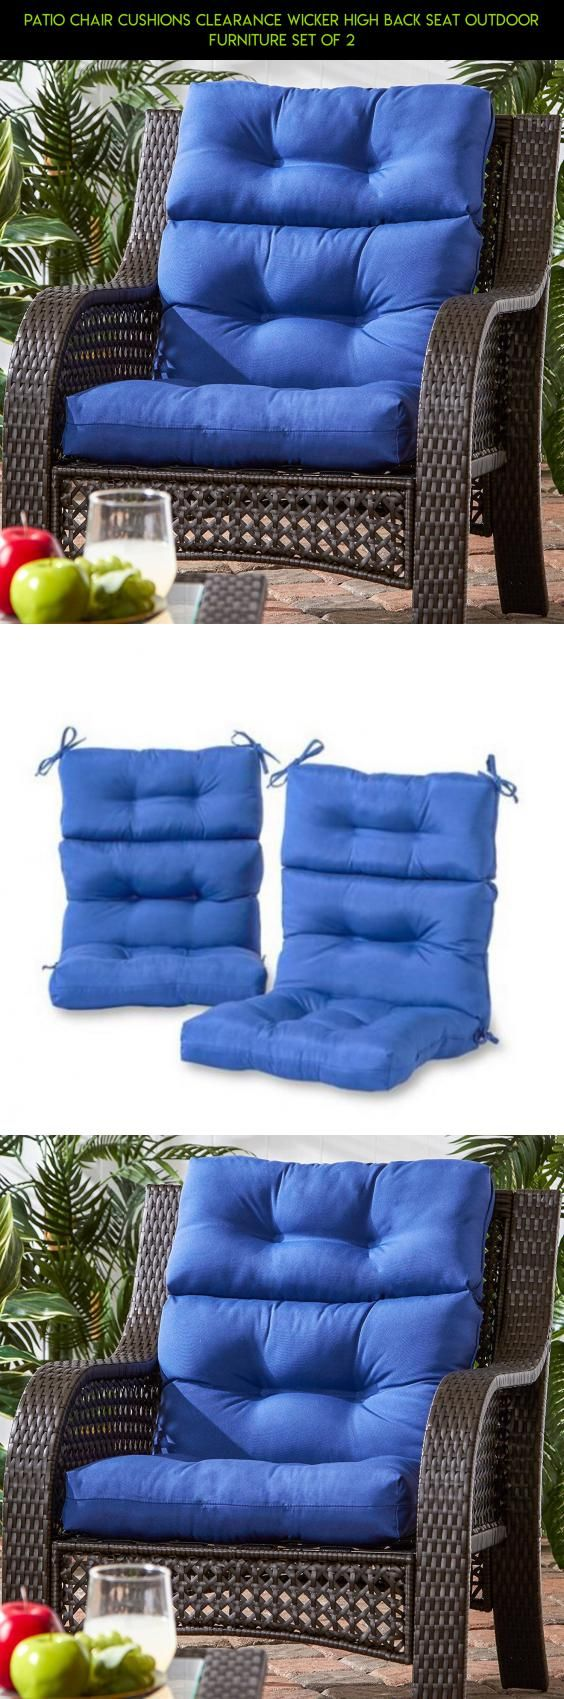 Patio Chair Cushions Clearance Wicker High Back Seat Outdoor Furniture Set of 2 #plans #sets #racing #products #shopping #gadgets #parts #patio #kit #tech #furniture #fpv #technology #camera #drone #clearance #2